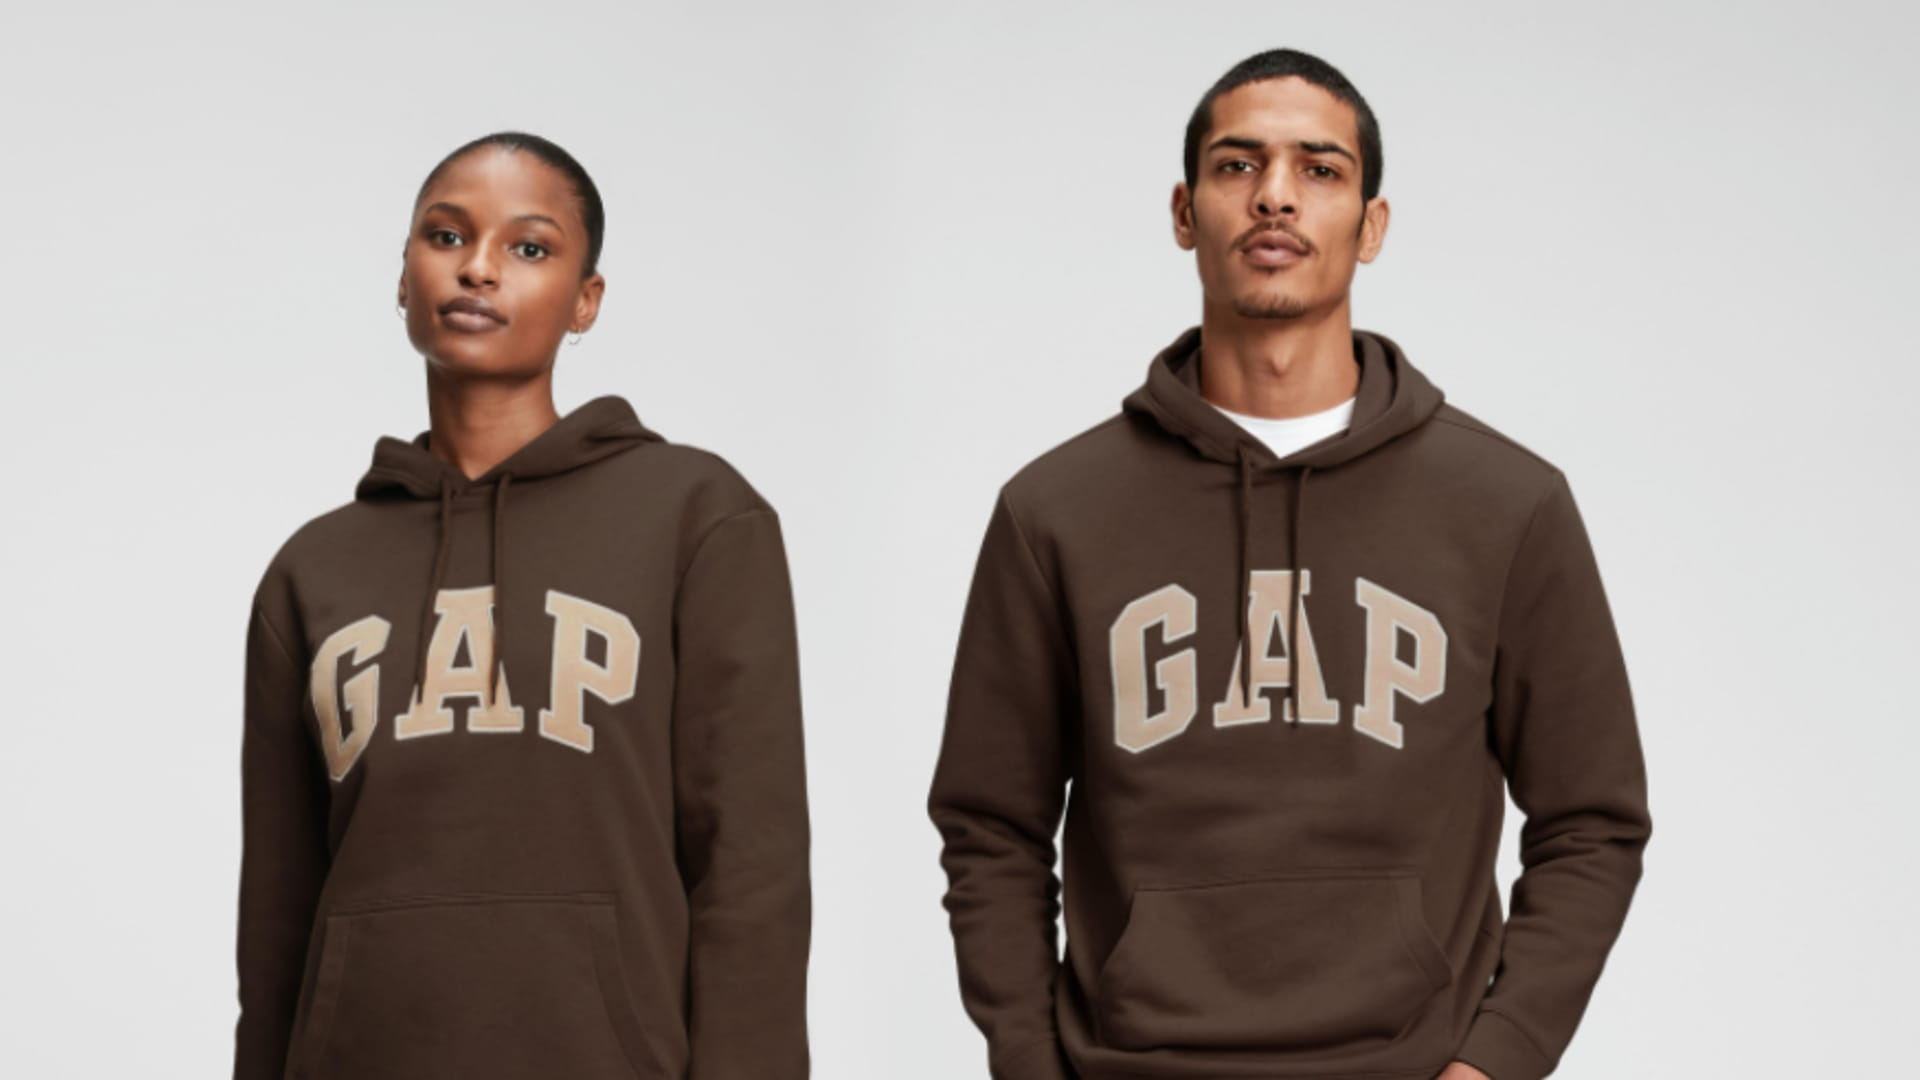 After it went viral on TikTok, Gap is relaunching its logo hoodie in a brown color. It's currently available for presale.